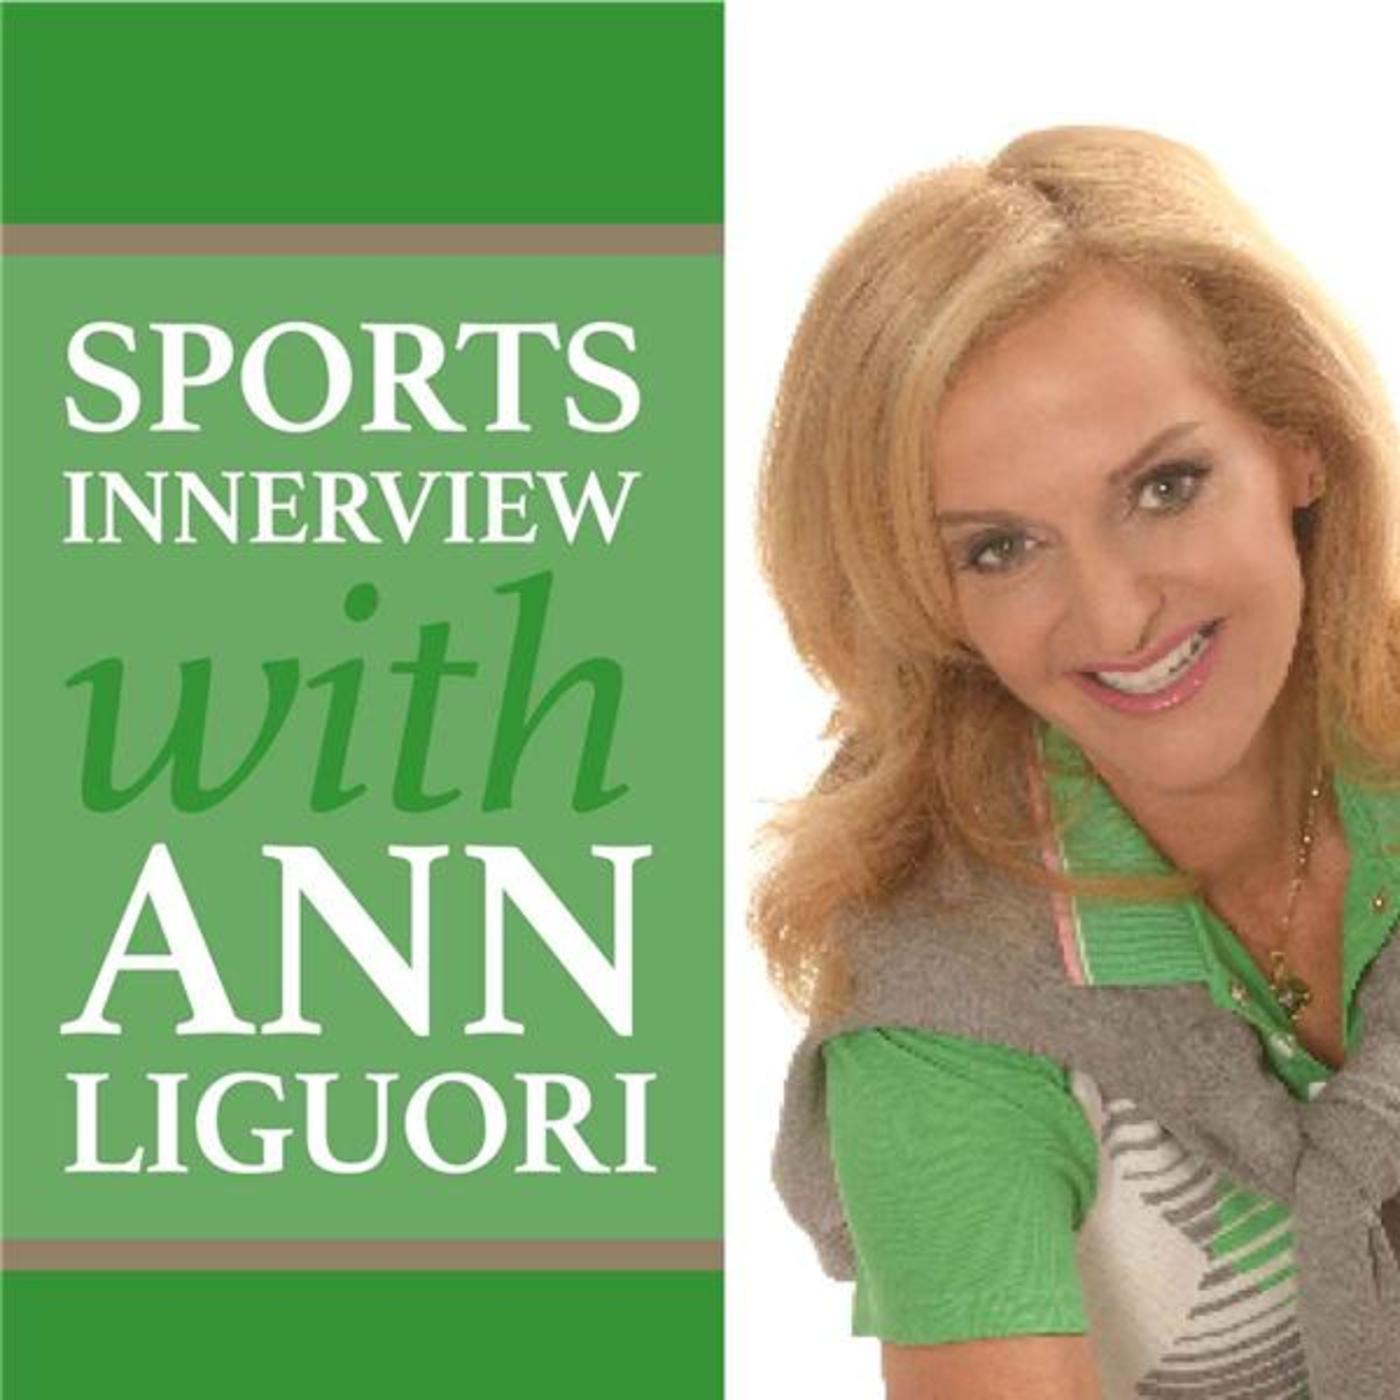 Sports Innerview with Ann Liguori